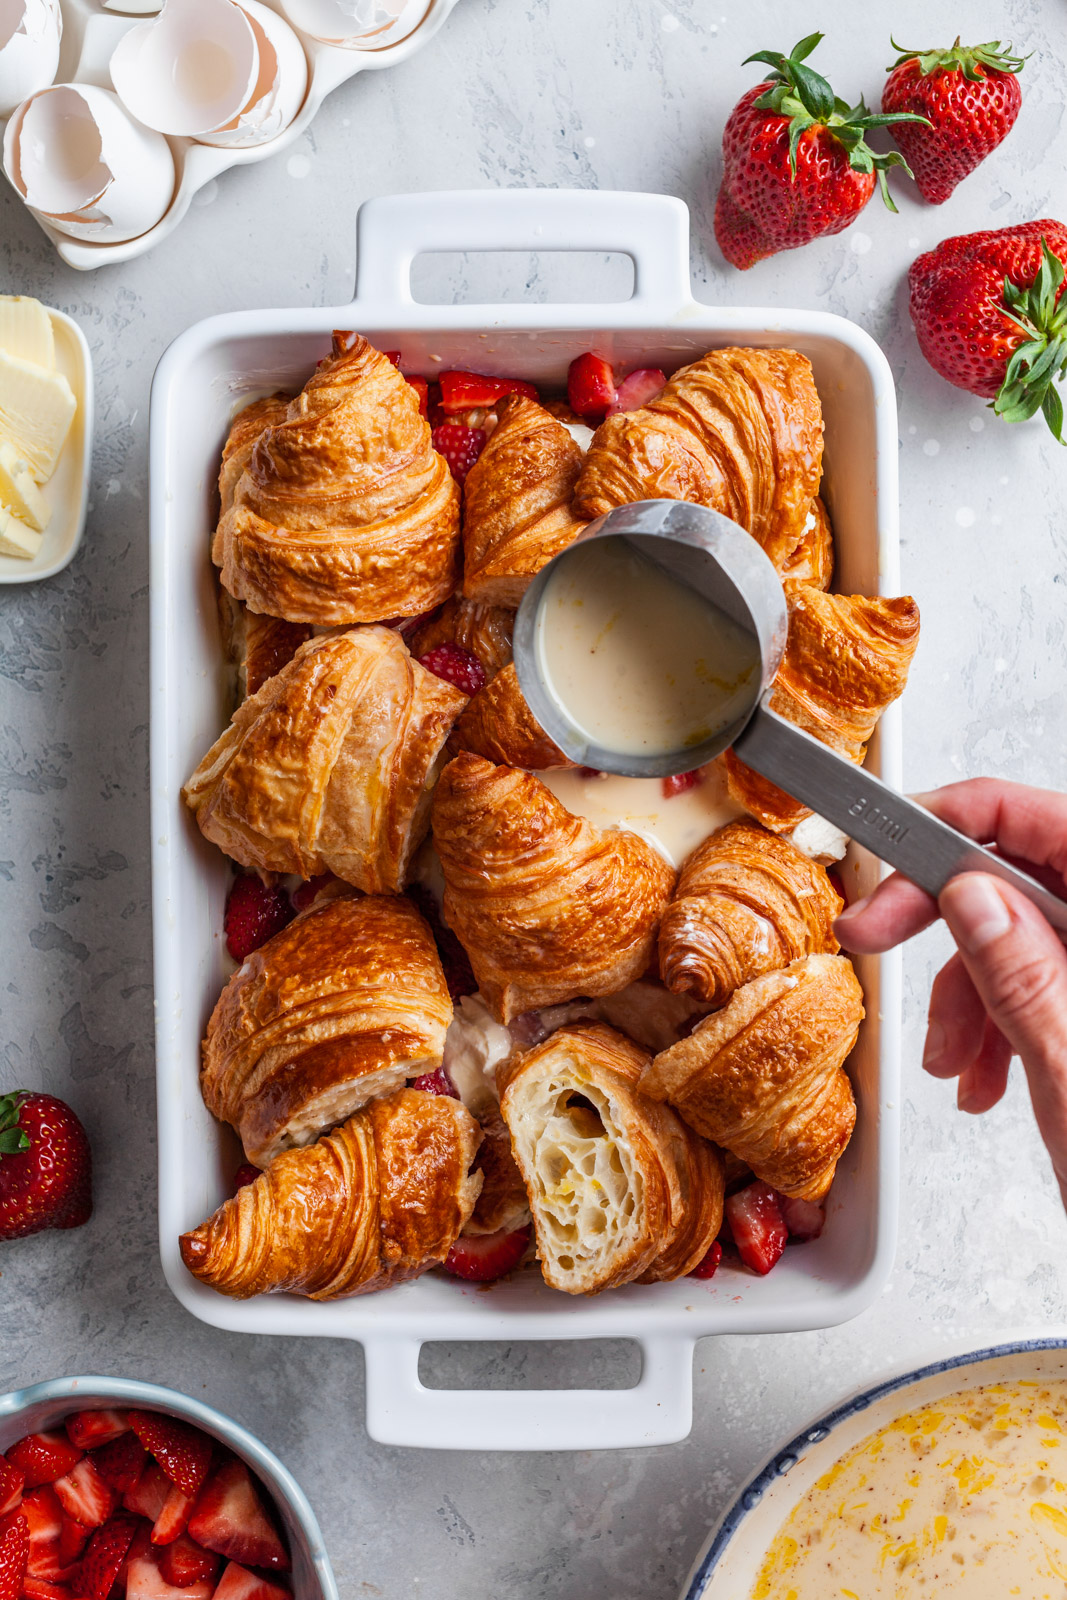 Croissant Baked French Toast With Strawberries and Cream